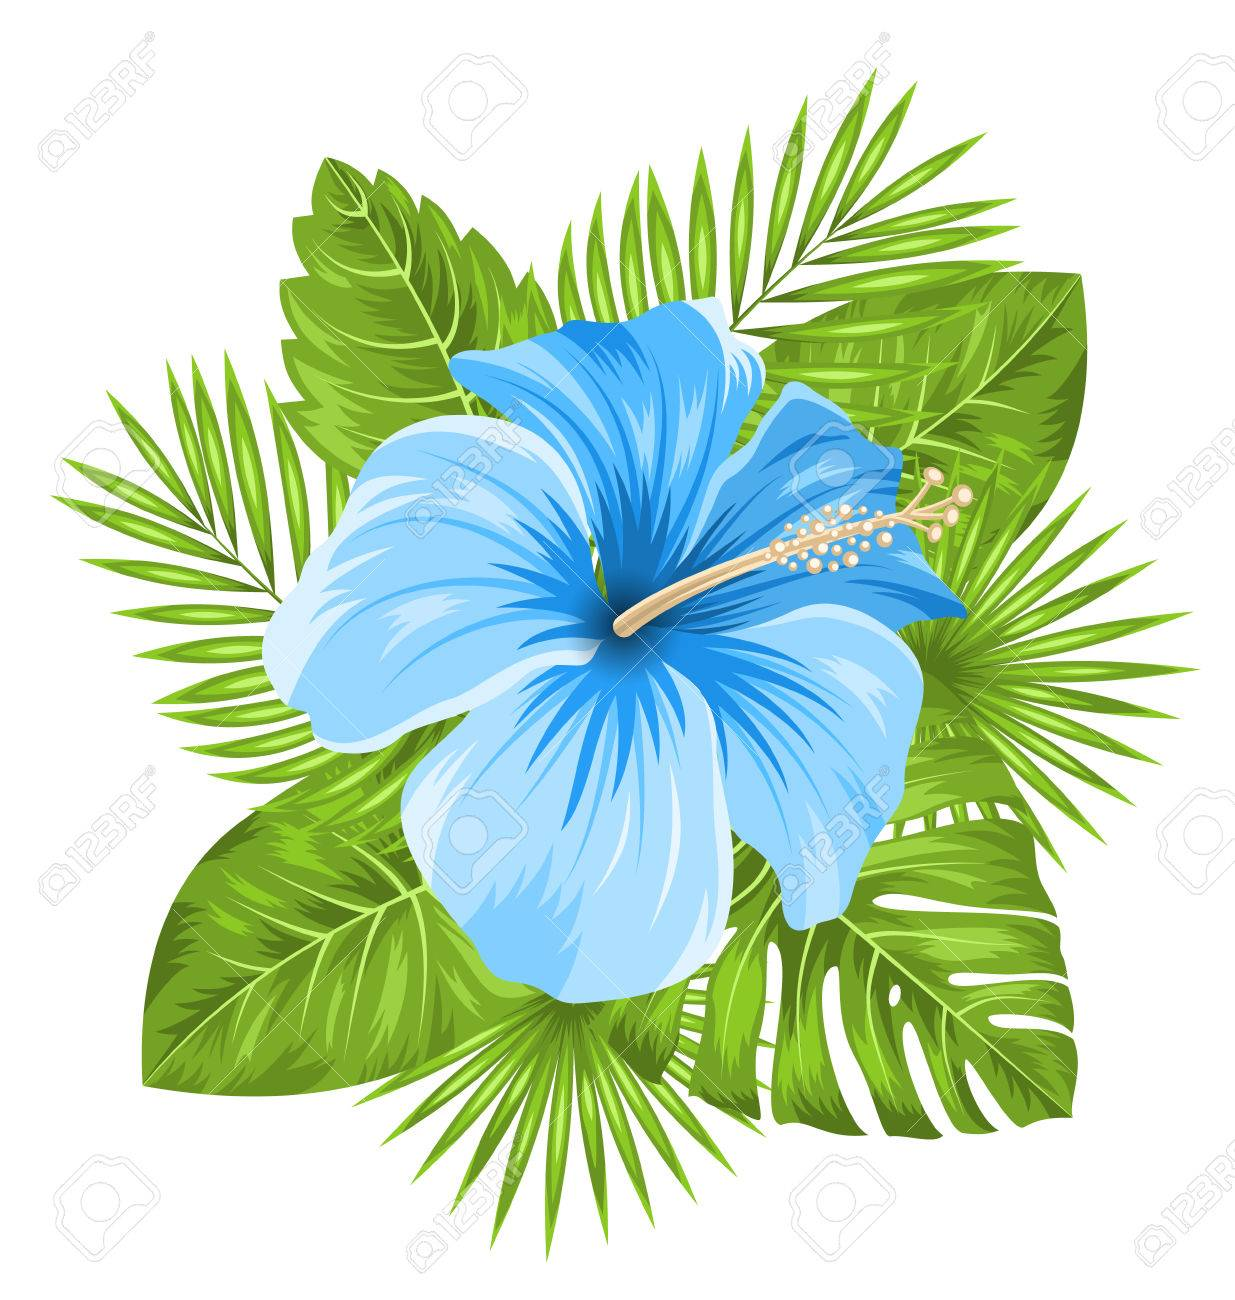 Illustration beautiful blue hibiscus flowers blossom and tropical illustration beautiful blue hibiscus flowers blossom and tropical leaves isolated on white background vector izmirmasajfo